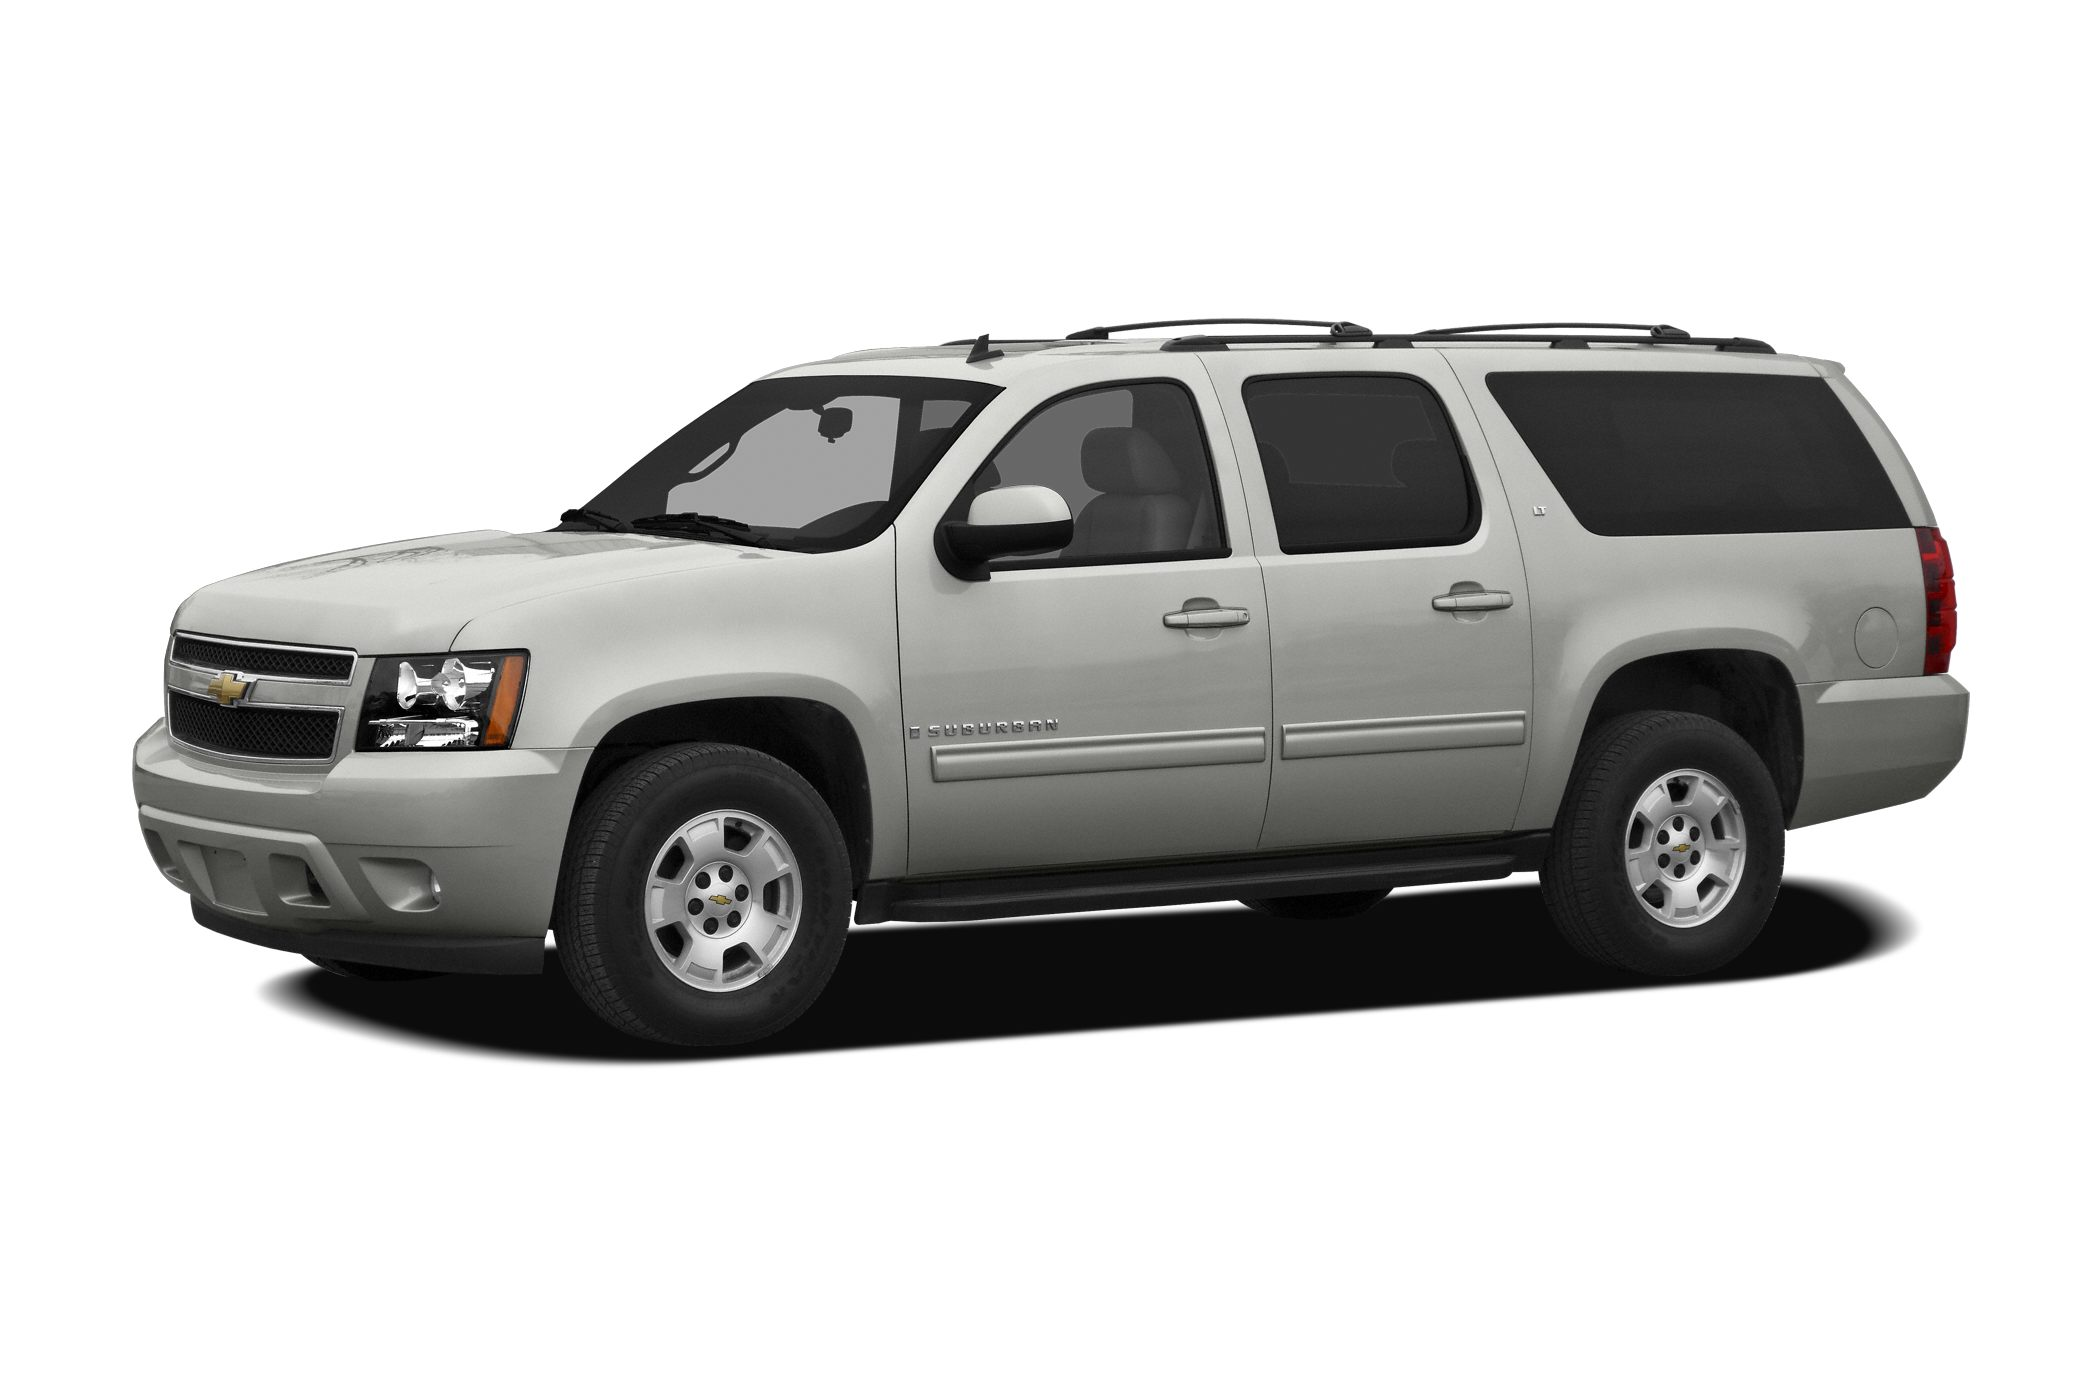 2009 Chevrolet Suburban 1500 LTZ SUV for sale in Baxley for $29,996 with 83,702 miles.